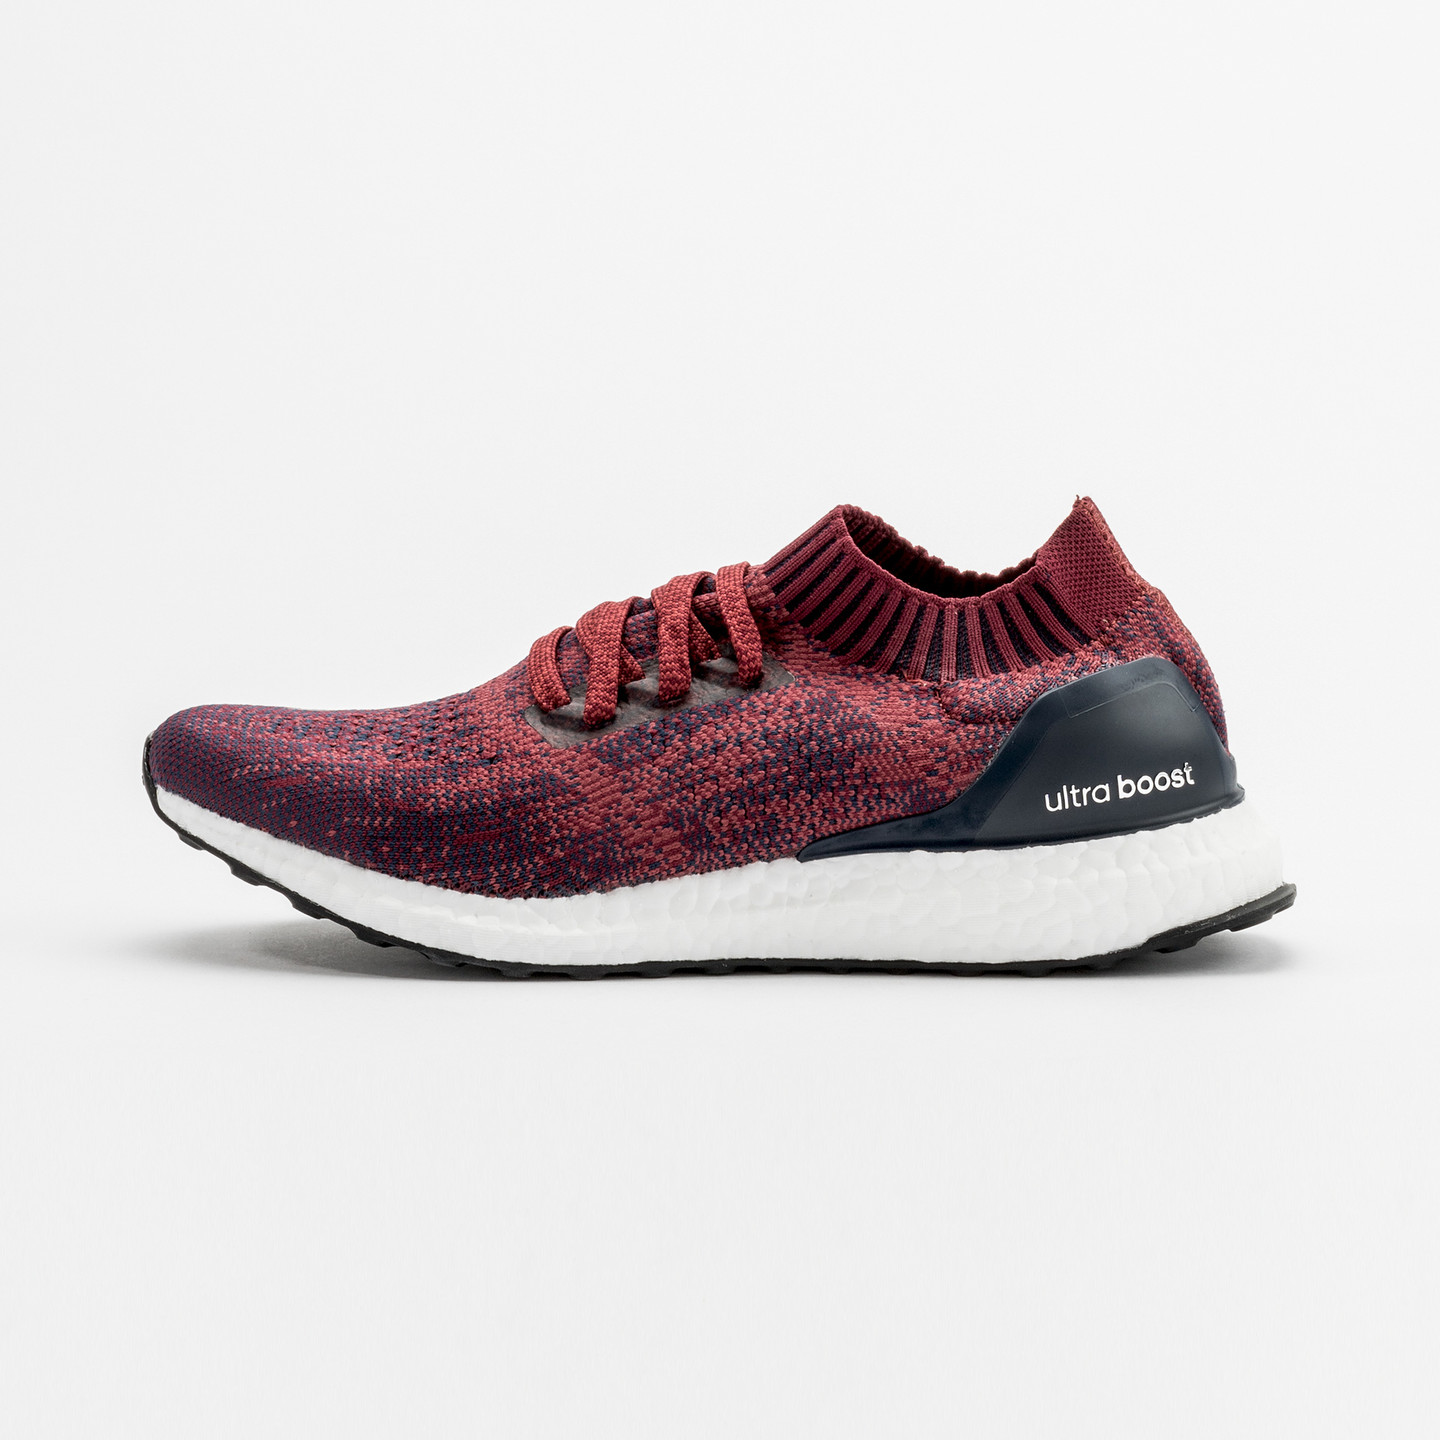 Adidas Ultra Boost Uncaged 'Burgundy' Mystery Red / Coll. Burgundy / Coll. Navy BA9617